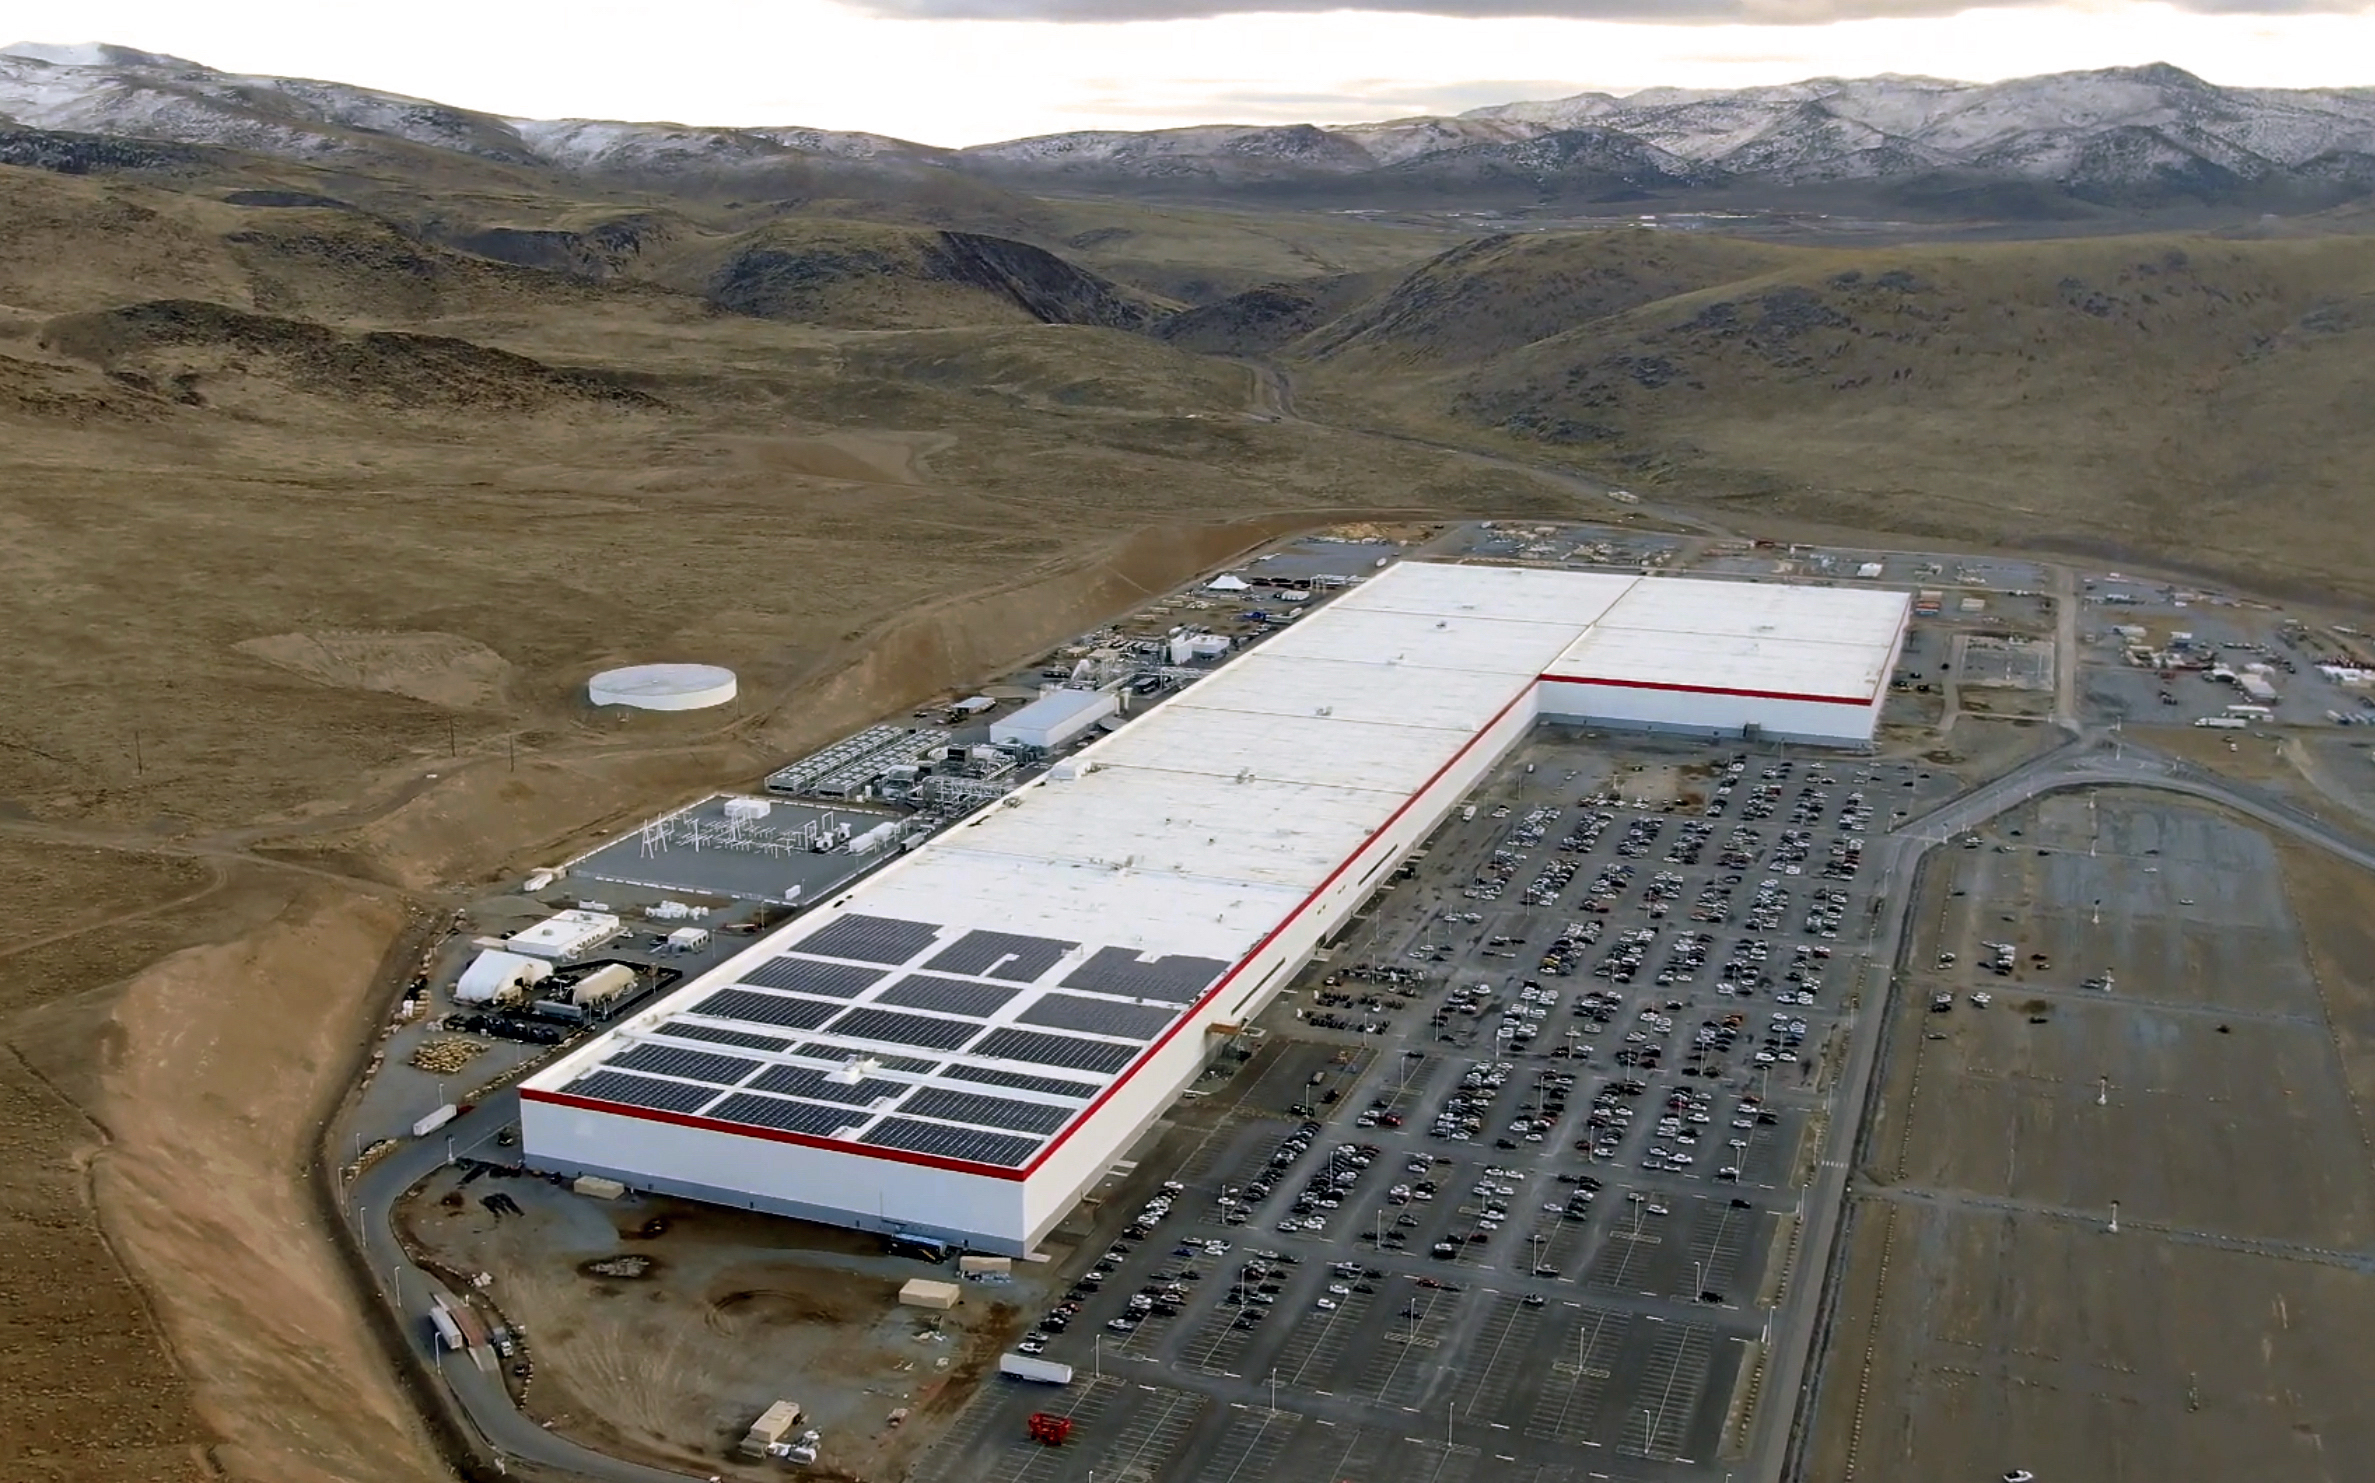 Tesla Nevada Factory Was Target of 'Serious' Cyber-Attack, Elon Musk Confirms